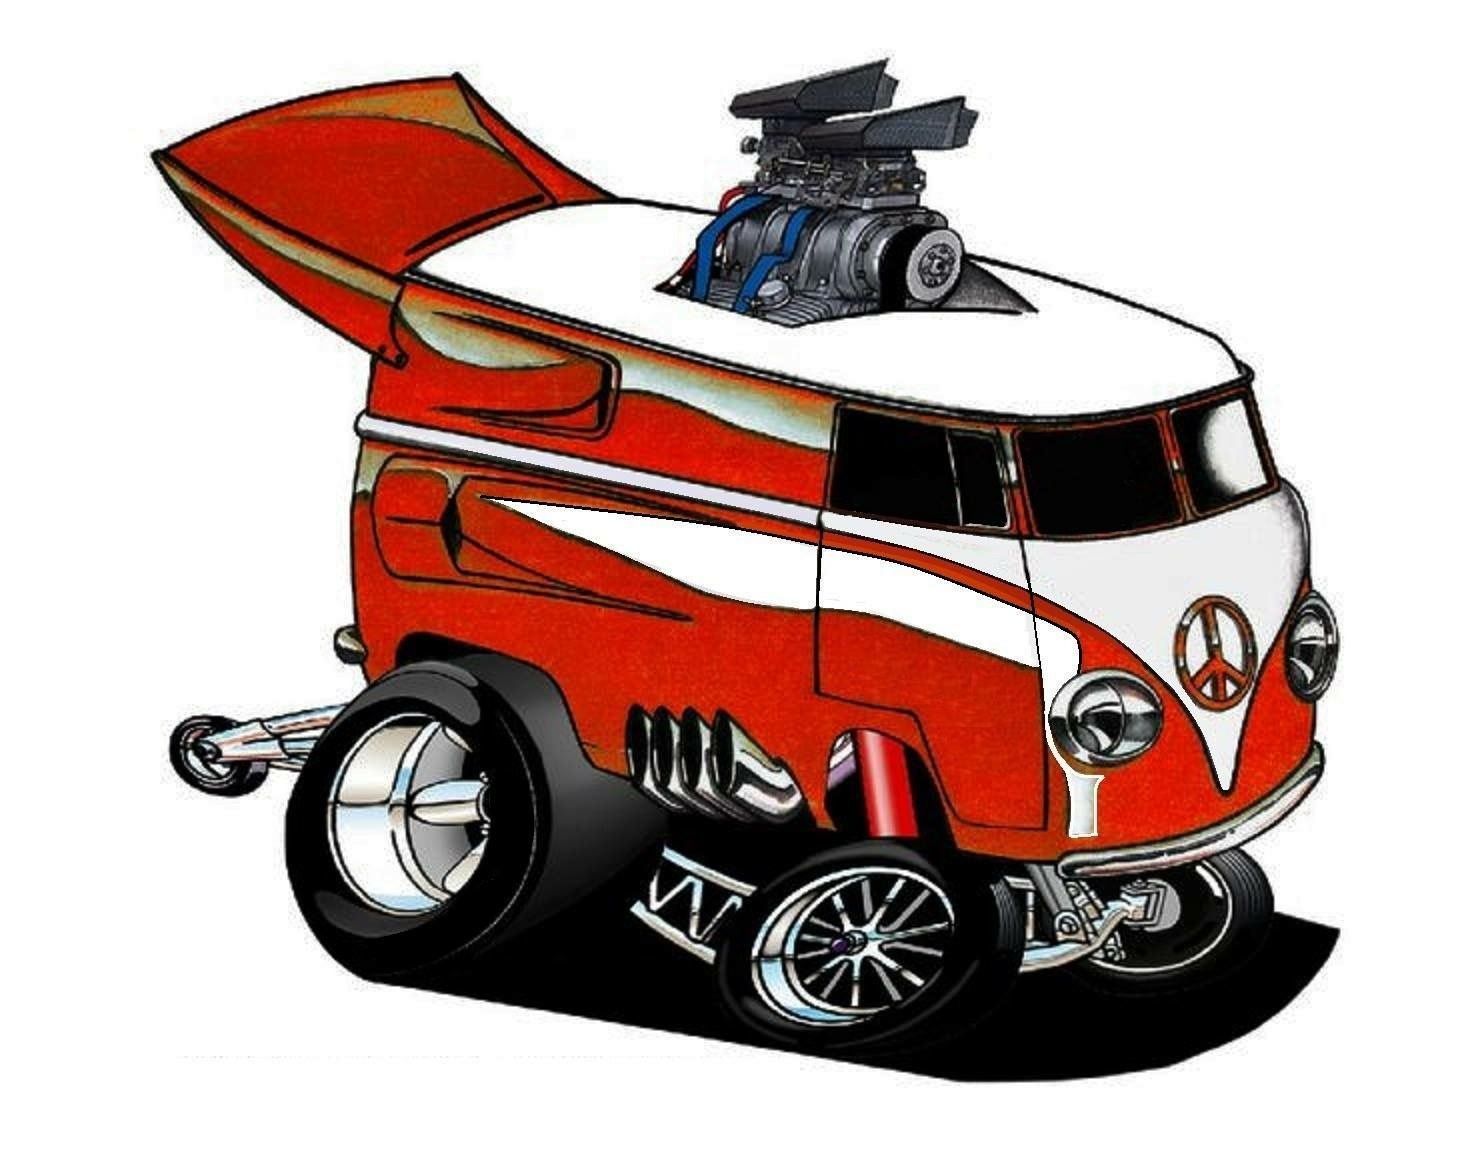 Pin by Luis Perez on VW Bus Transporter Car drawings